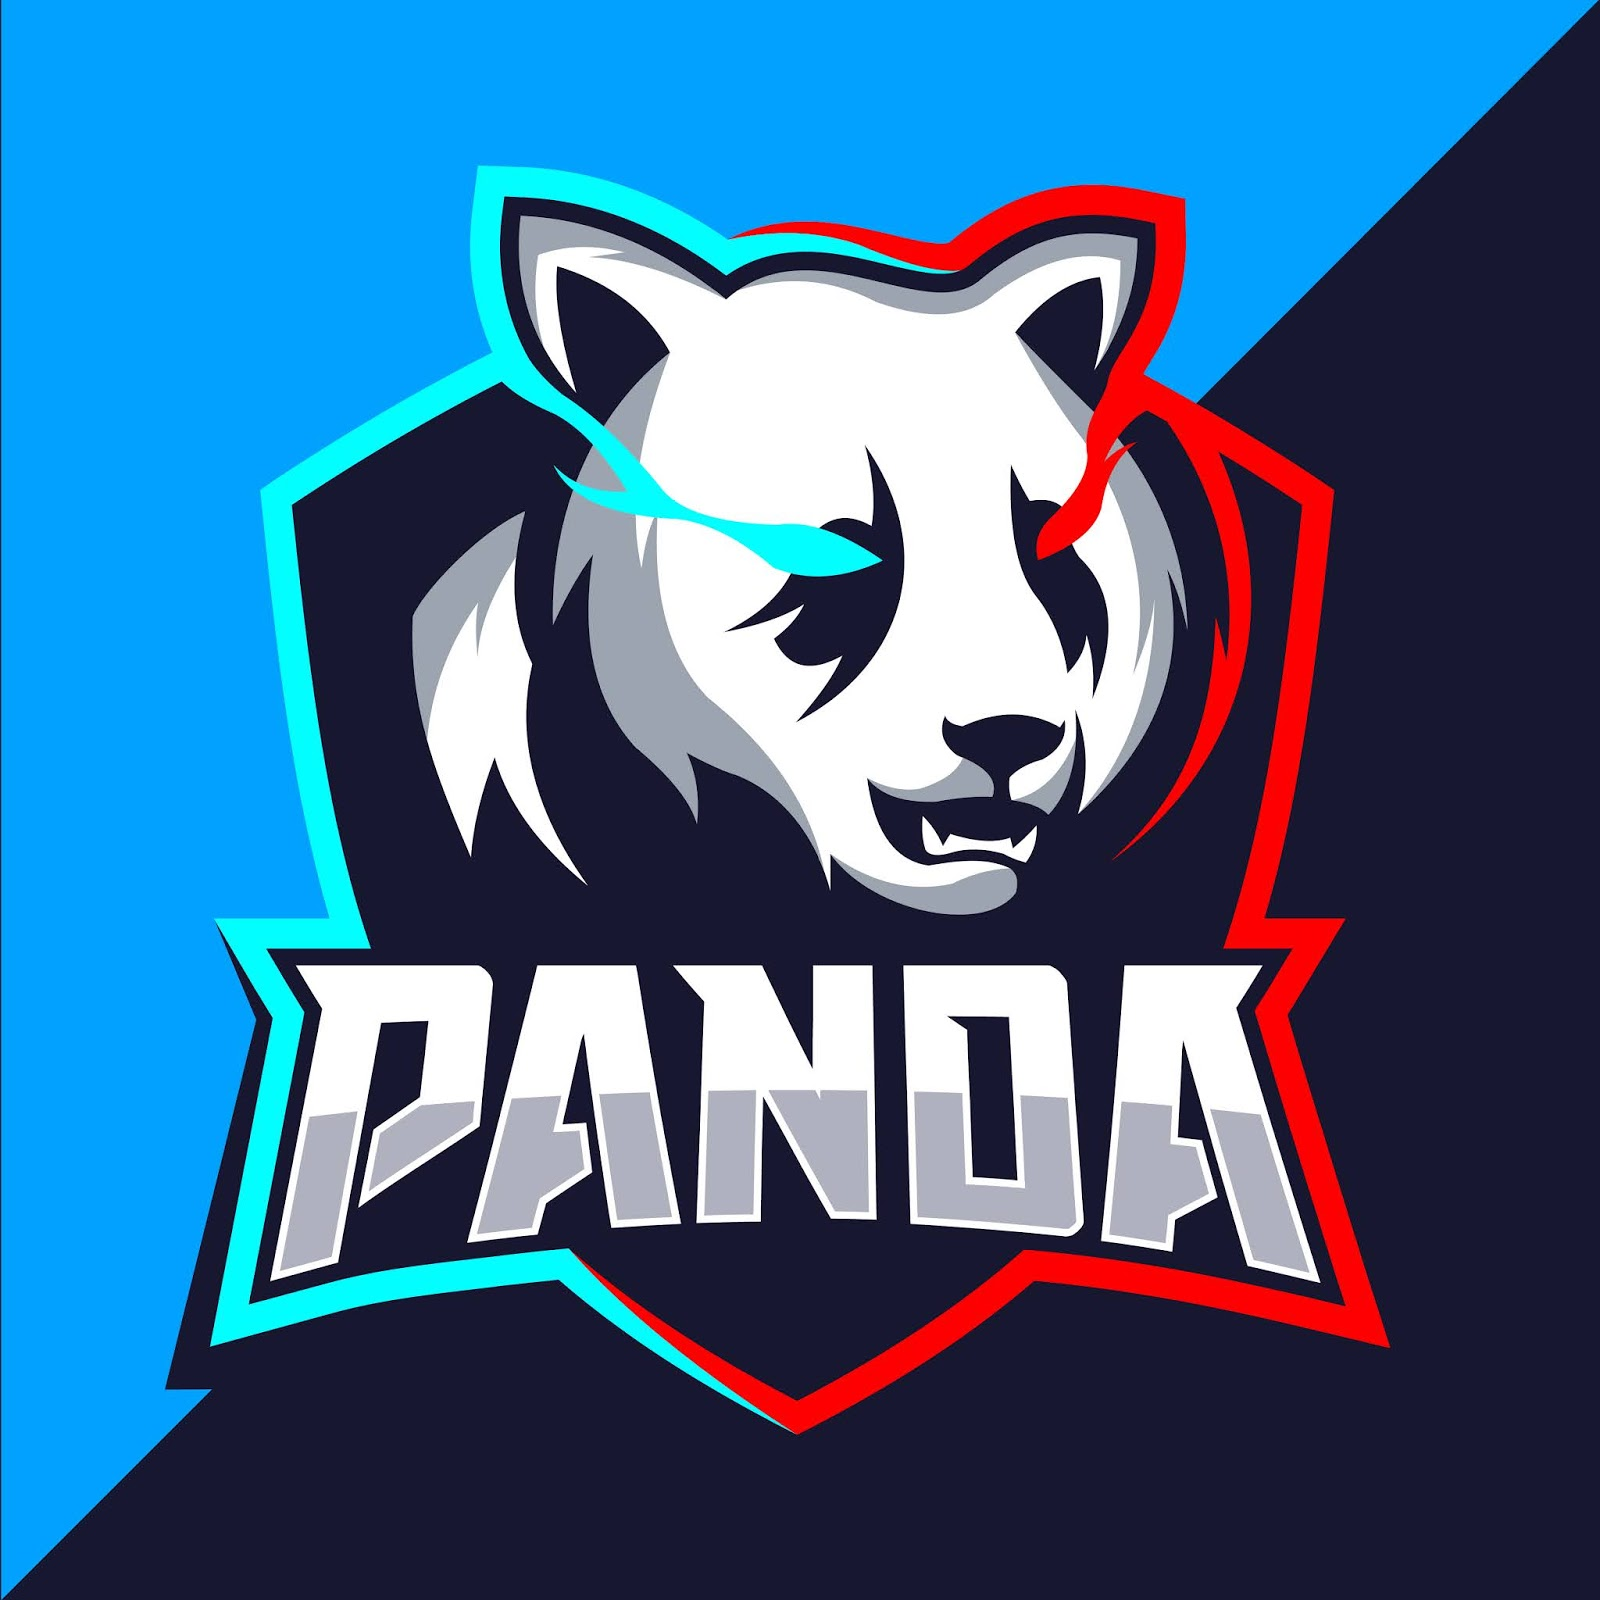 Panda Squad With Sword Mascot Esport Free Download Vector CDR, AI, EPS and PNG Formats